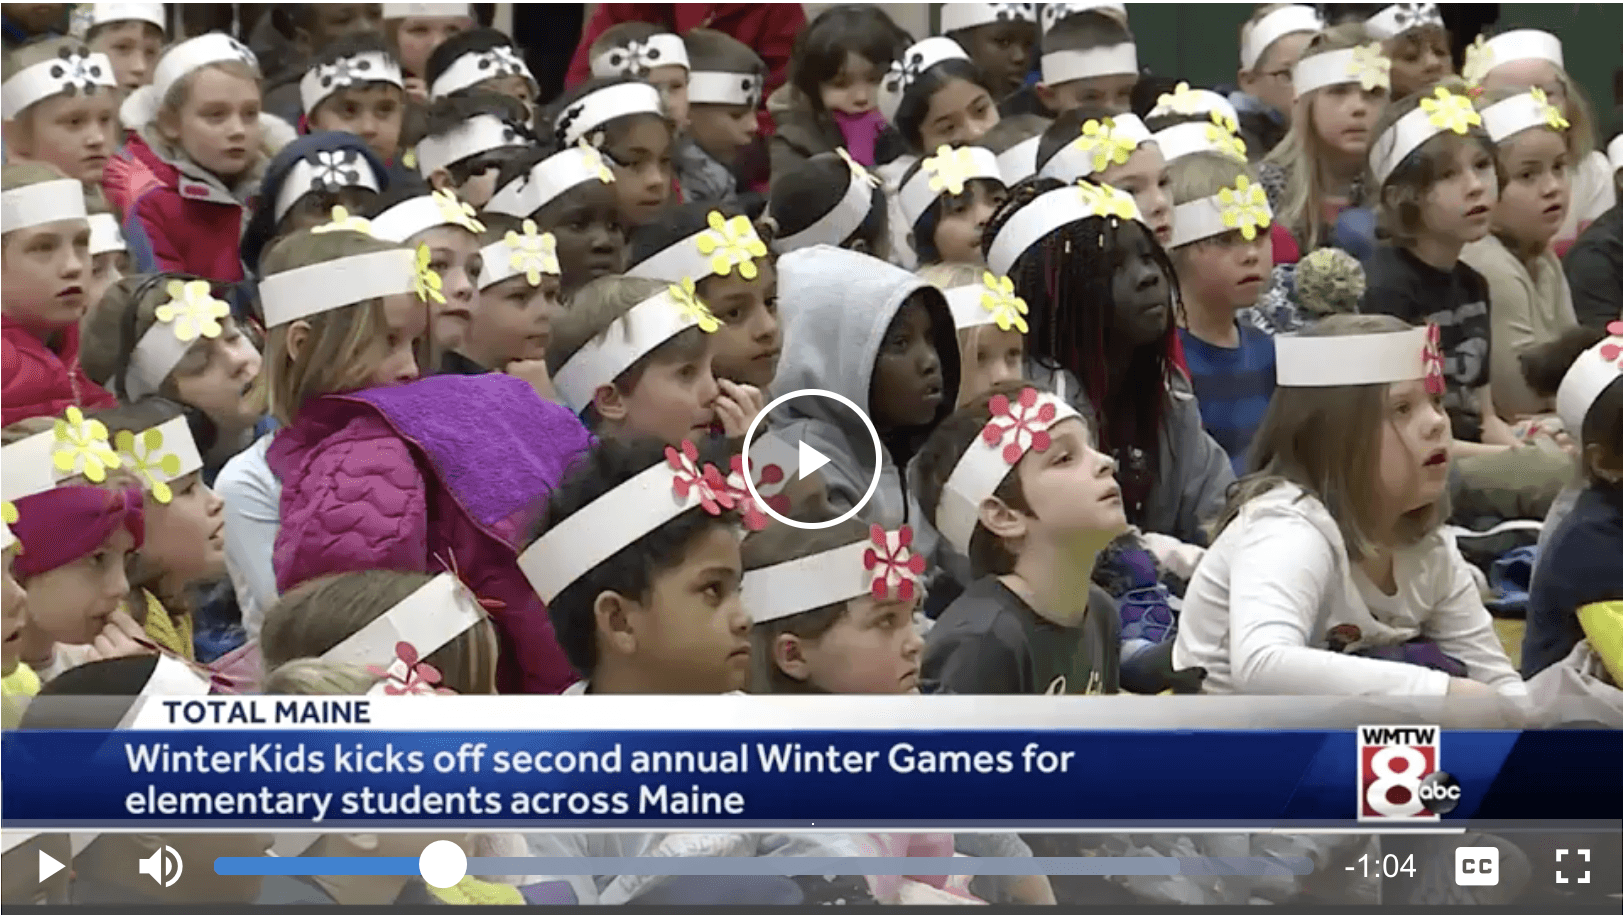 WinterKids Winter Games kicks off for elementary schools across Maine